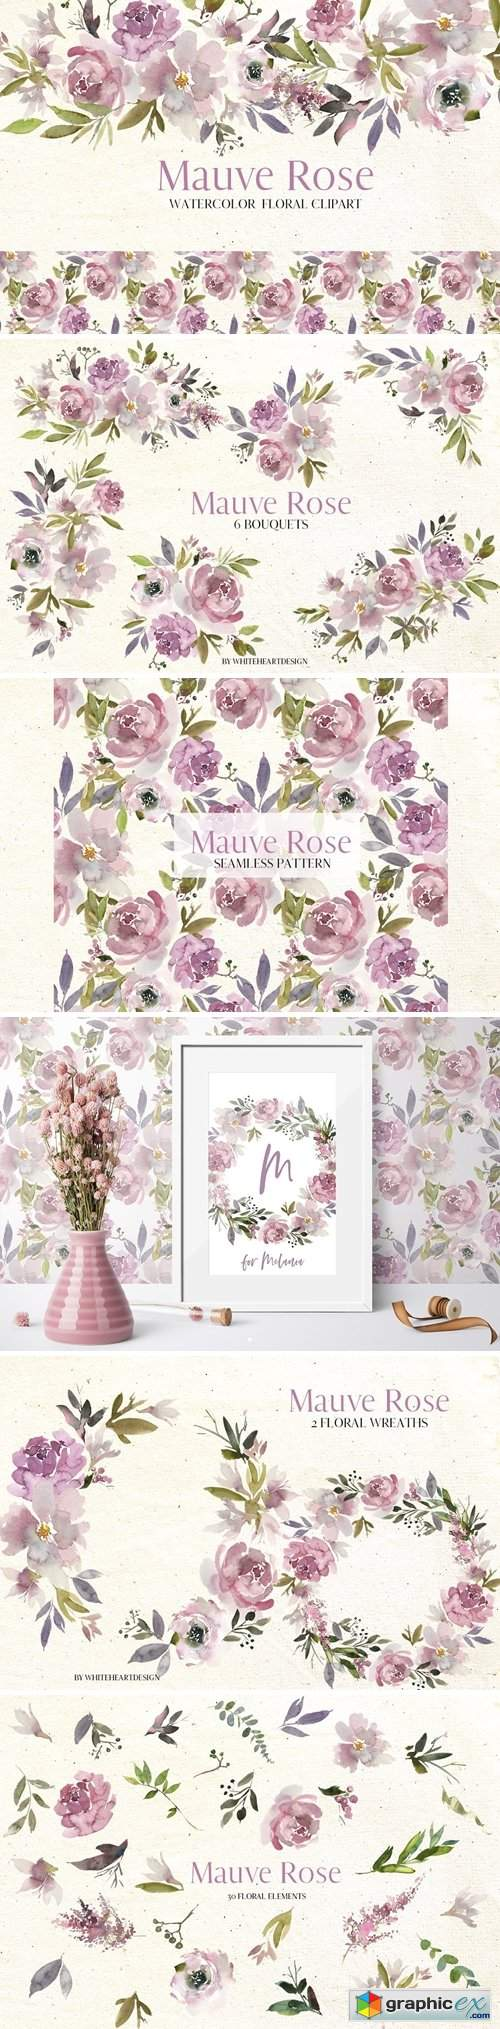 Mauve Rose Watercolor Floral Clipart